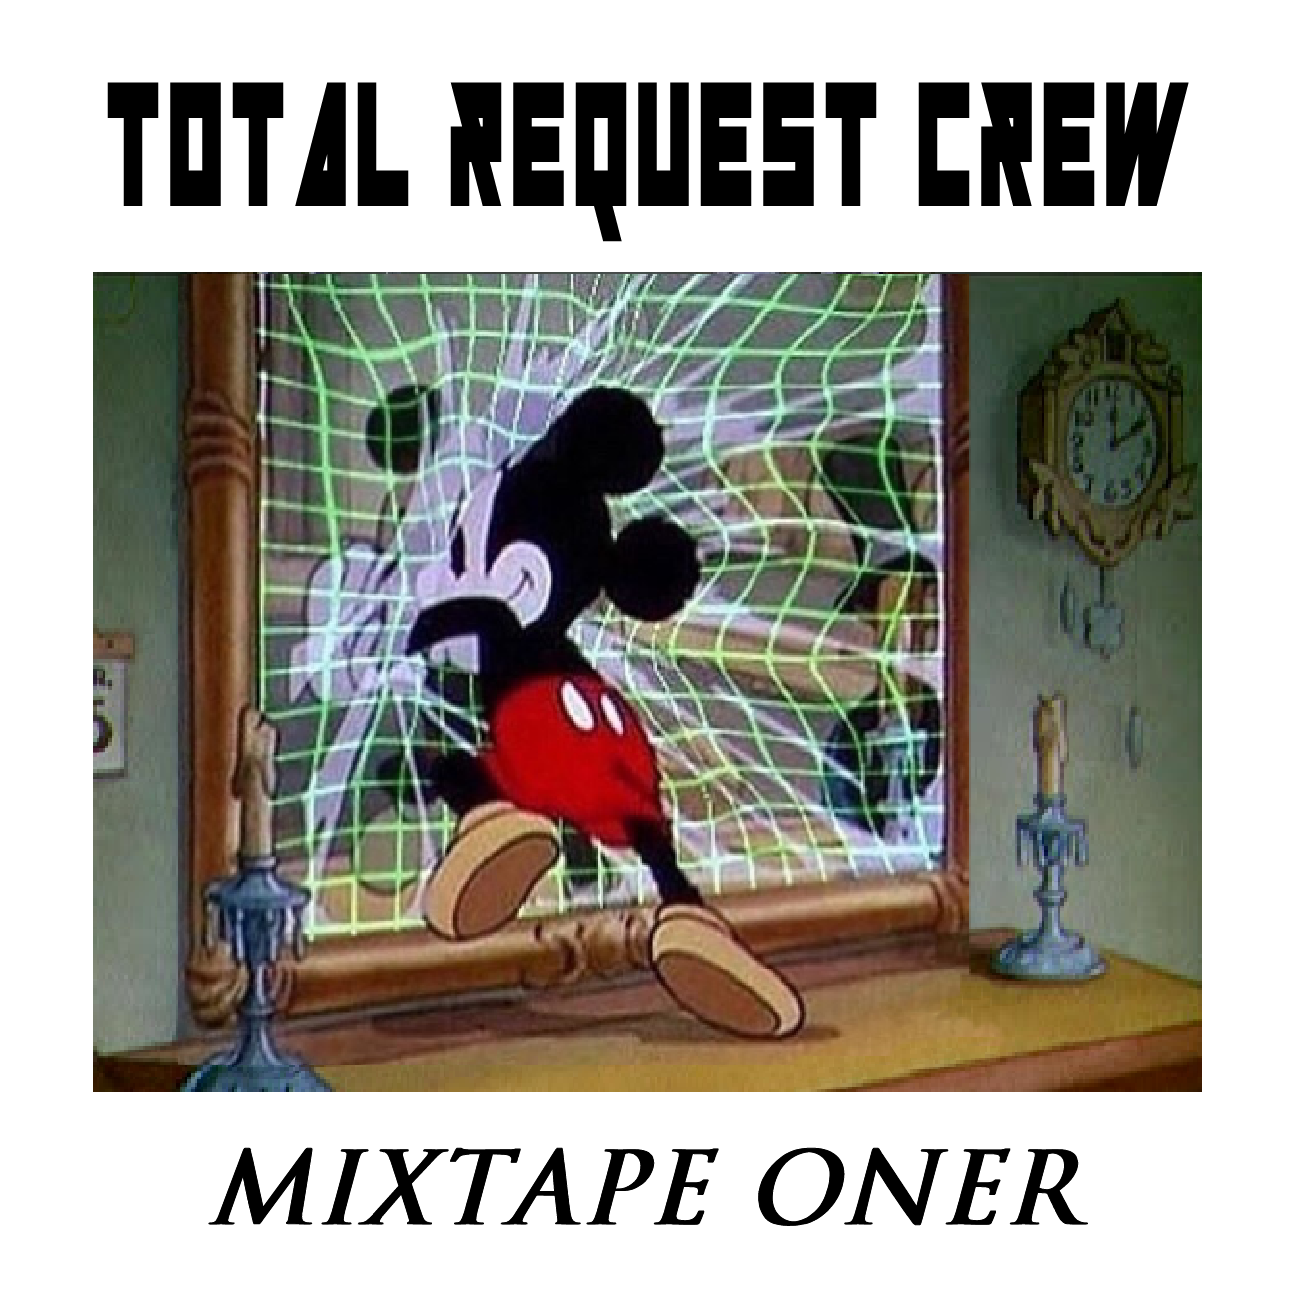 Total Request Crew - Mixtape Oner Digital Download